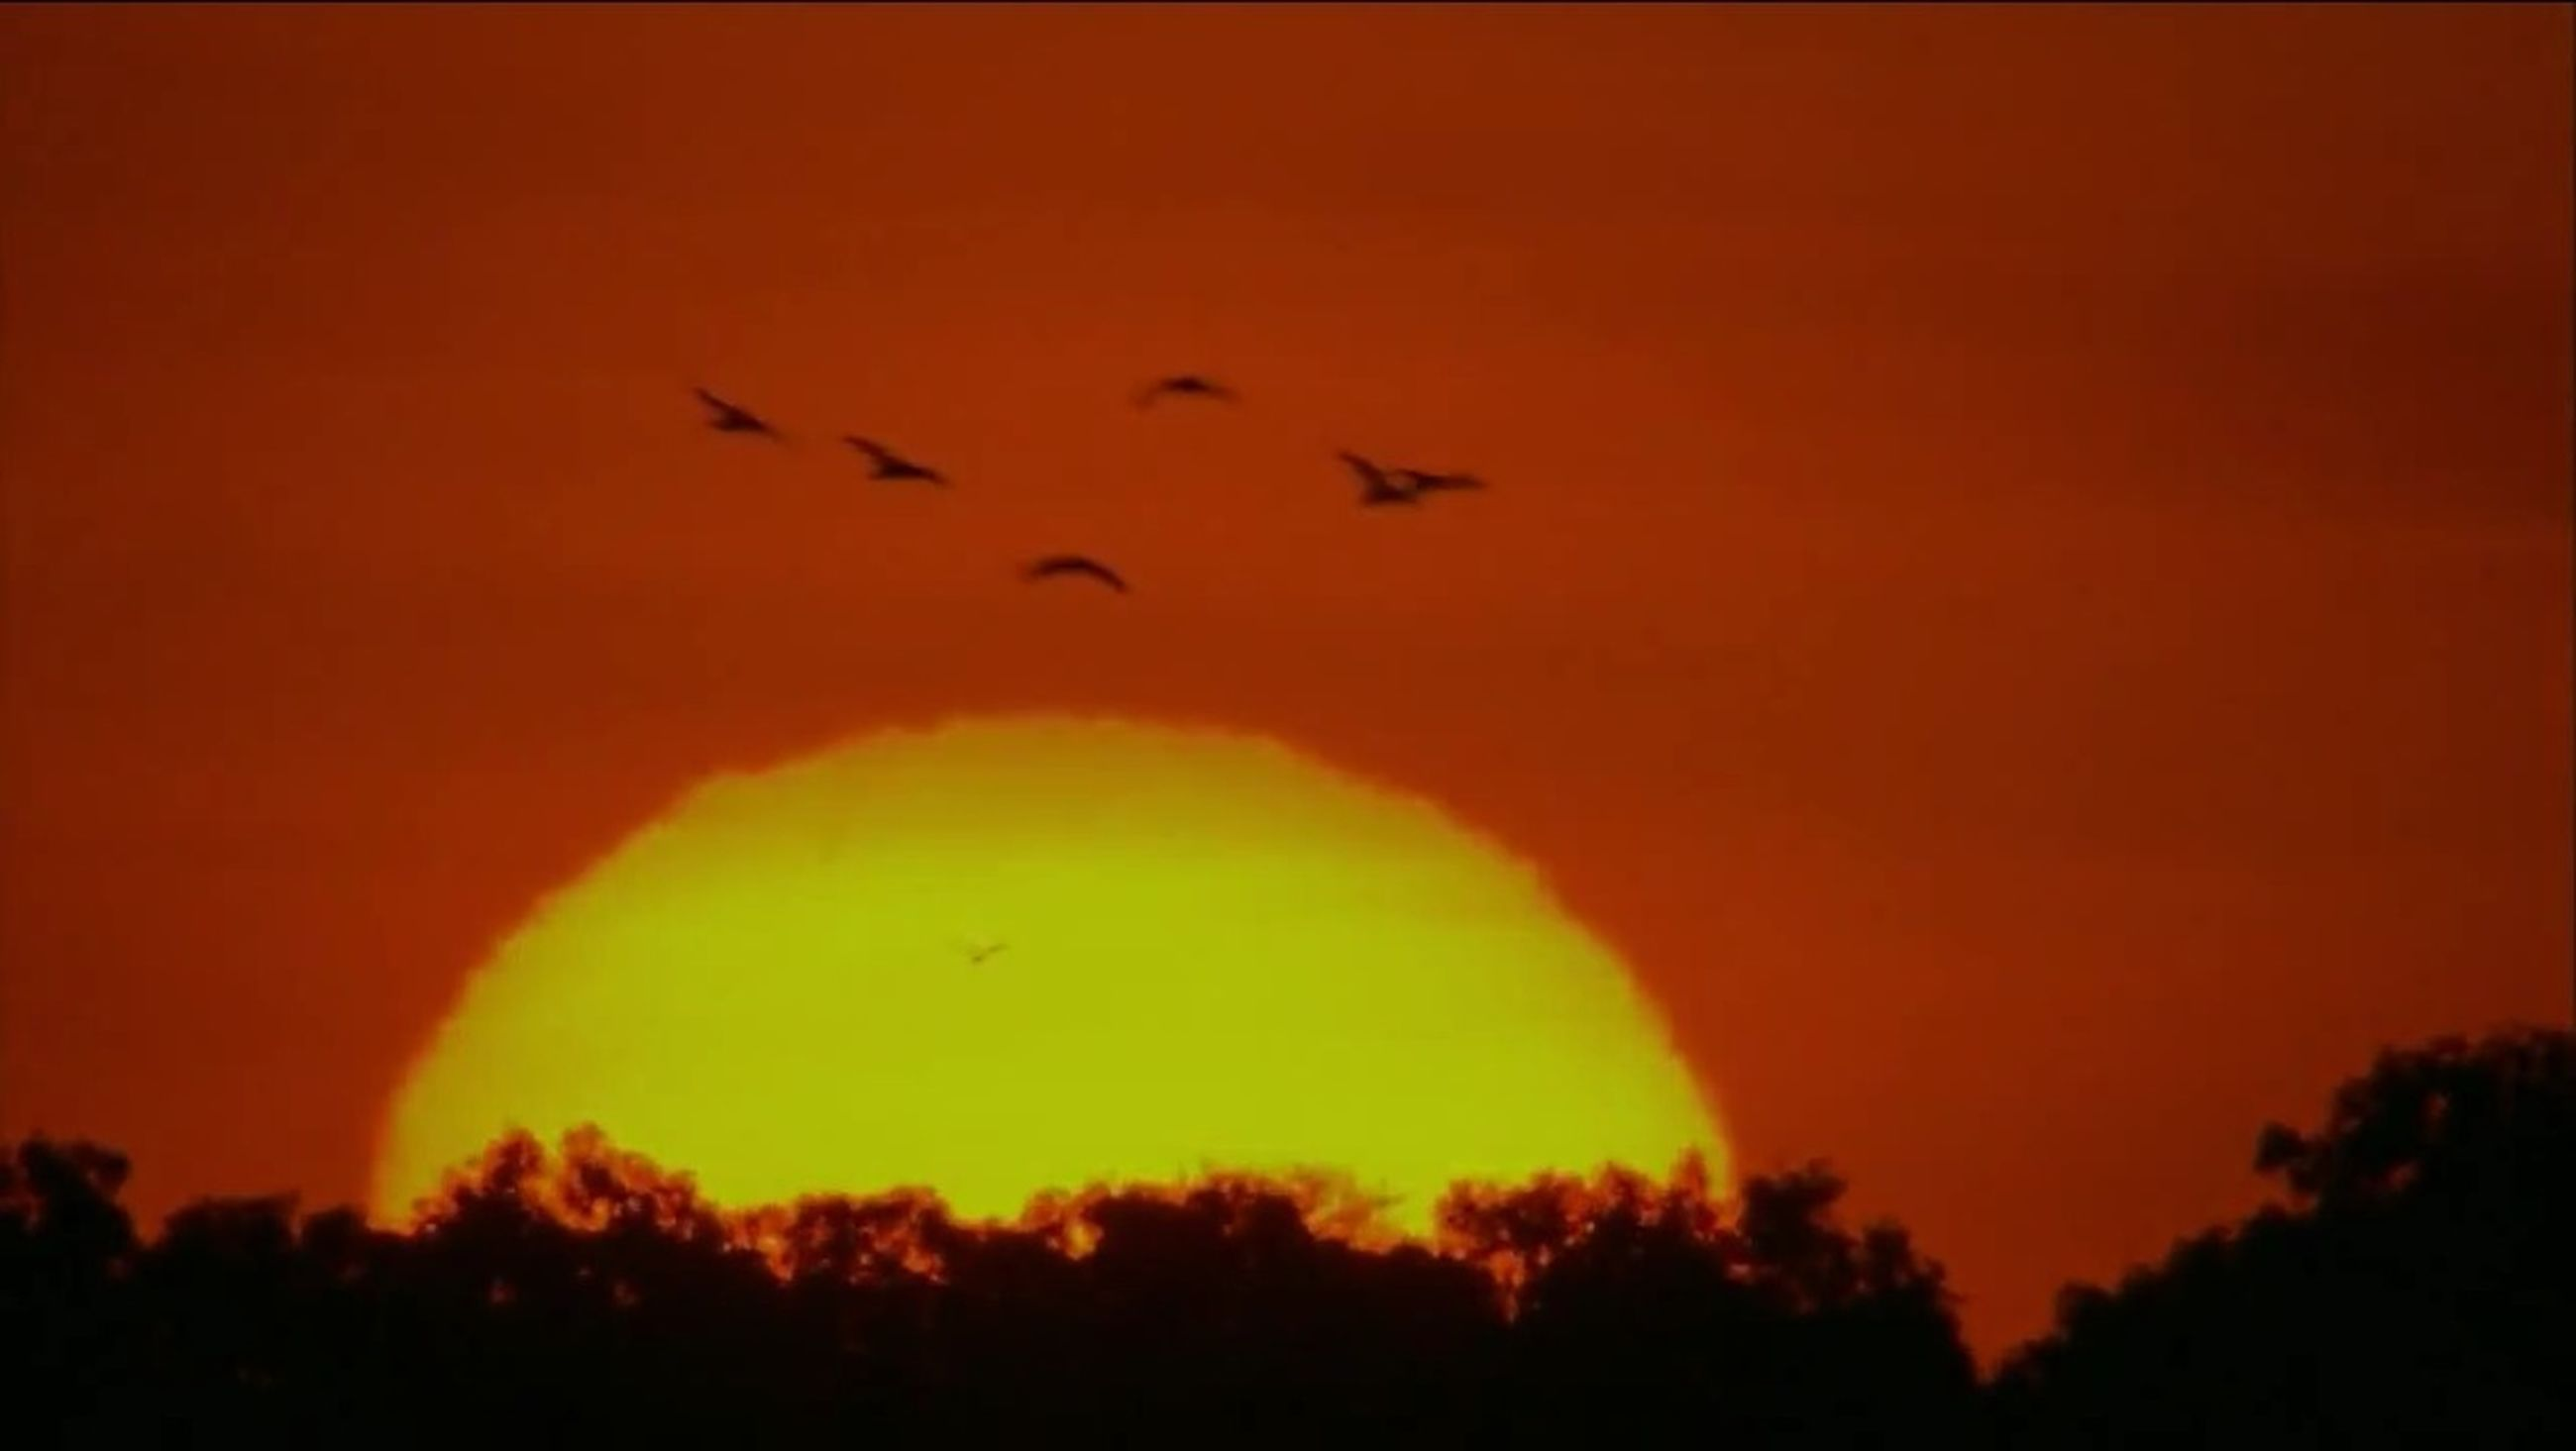 sunset, silhouette, orange color, flying, bird, beauty in nature, sky, scenics, tranquil scene, tranquility, tree, low angle view, nature, idyllic, animal themes, outdoors, dramatic sky, wildlife, mid-air, no people